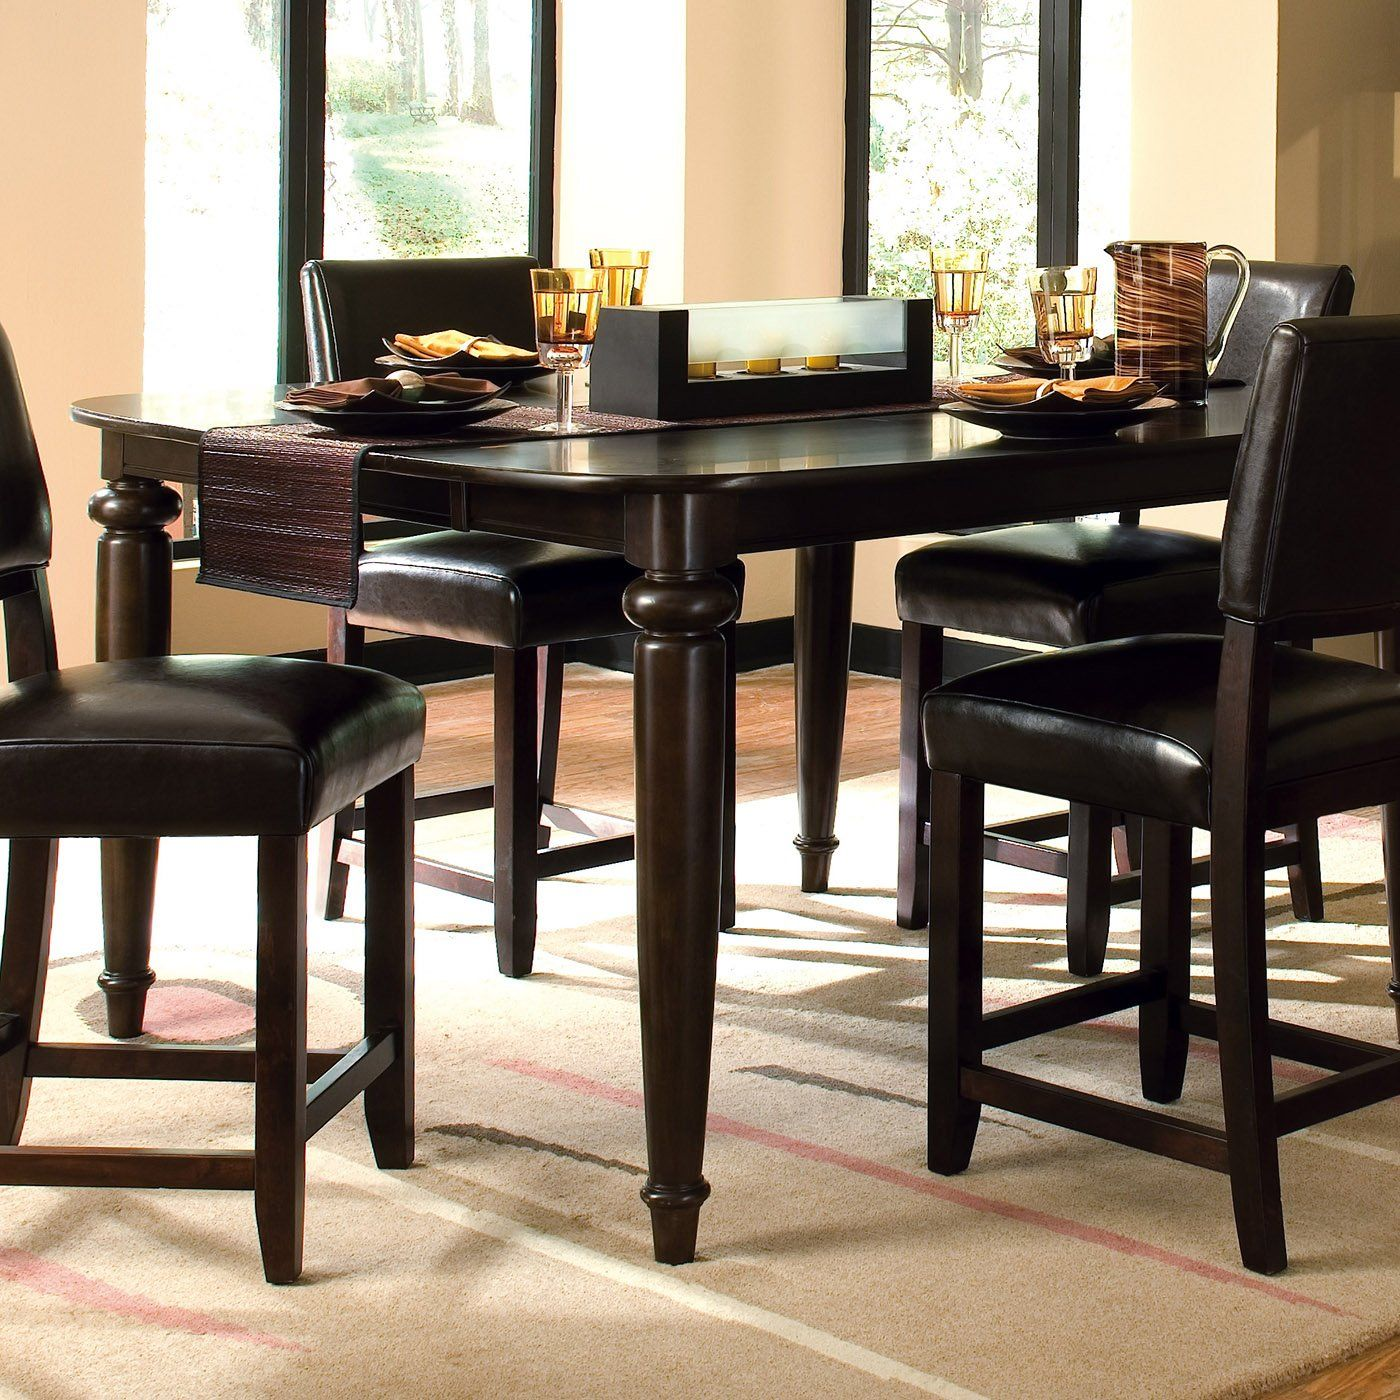 Tall Table And Chairs For Kitchen Sink Rug Beautiful Black High Top Kitchentable Pinterest